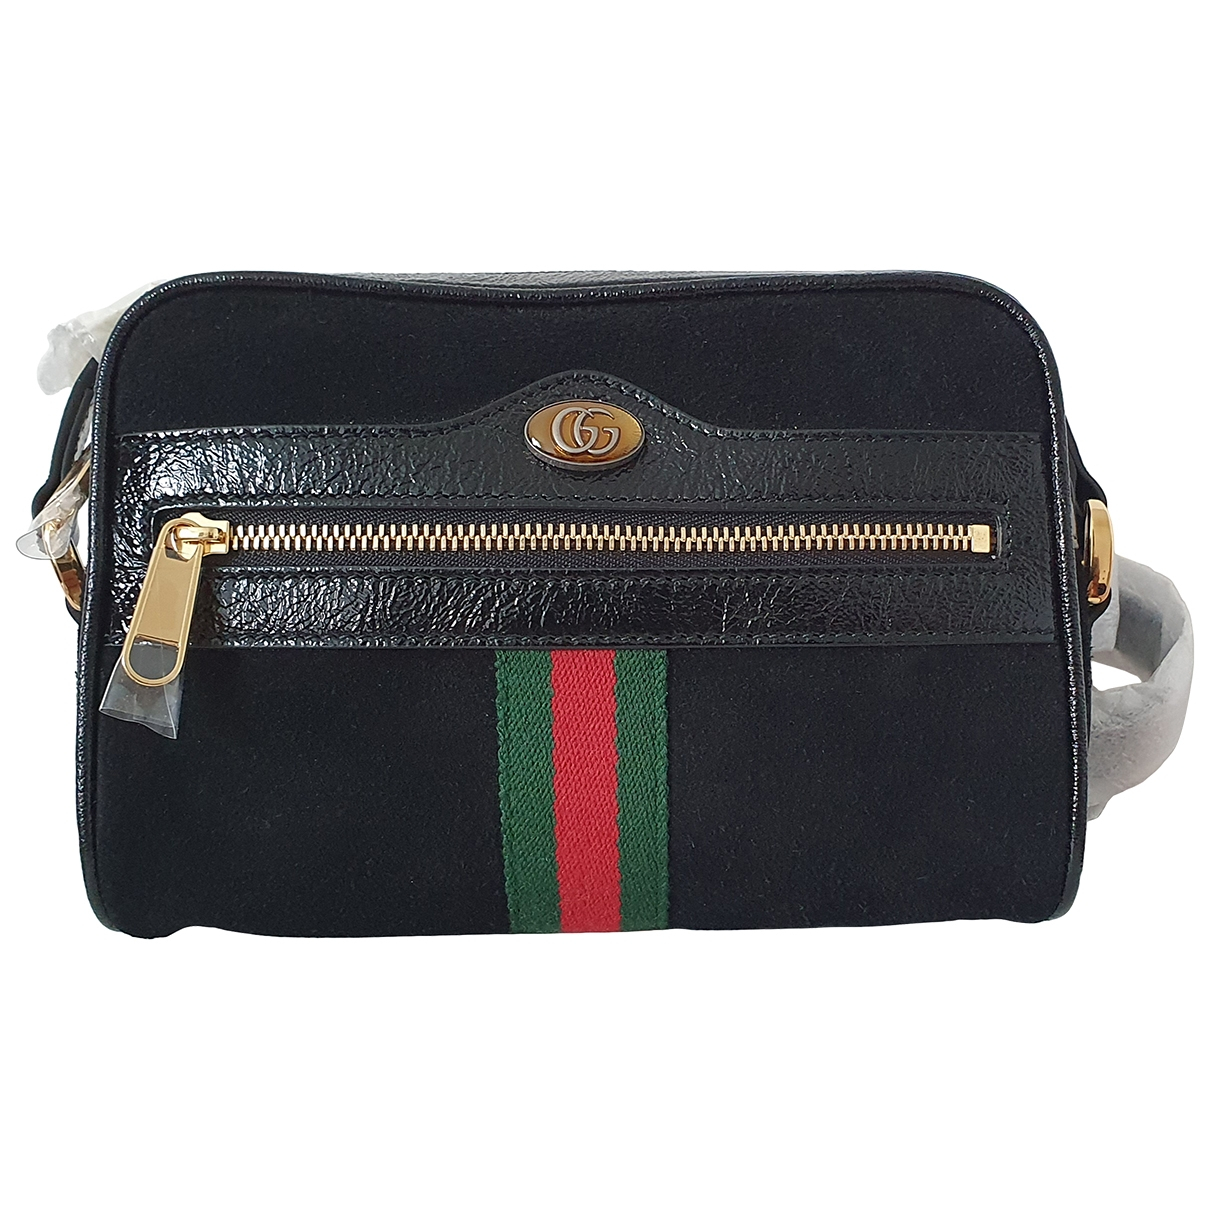 Gucci Ophidia Black Suede handbag for Women \N